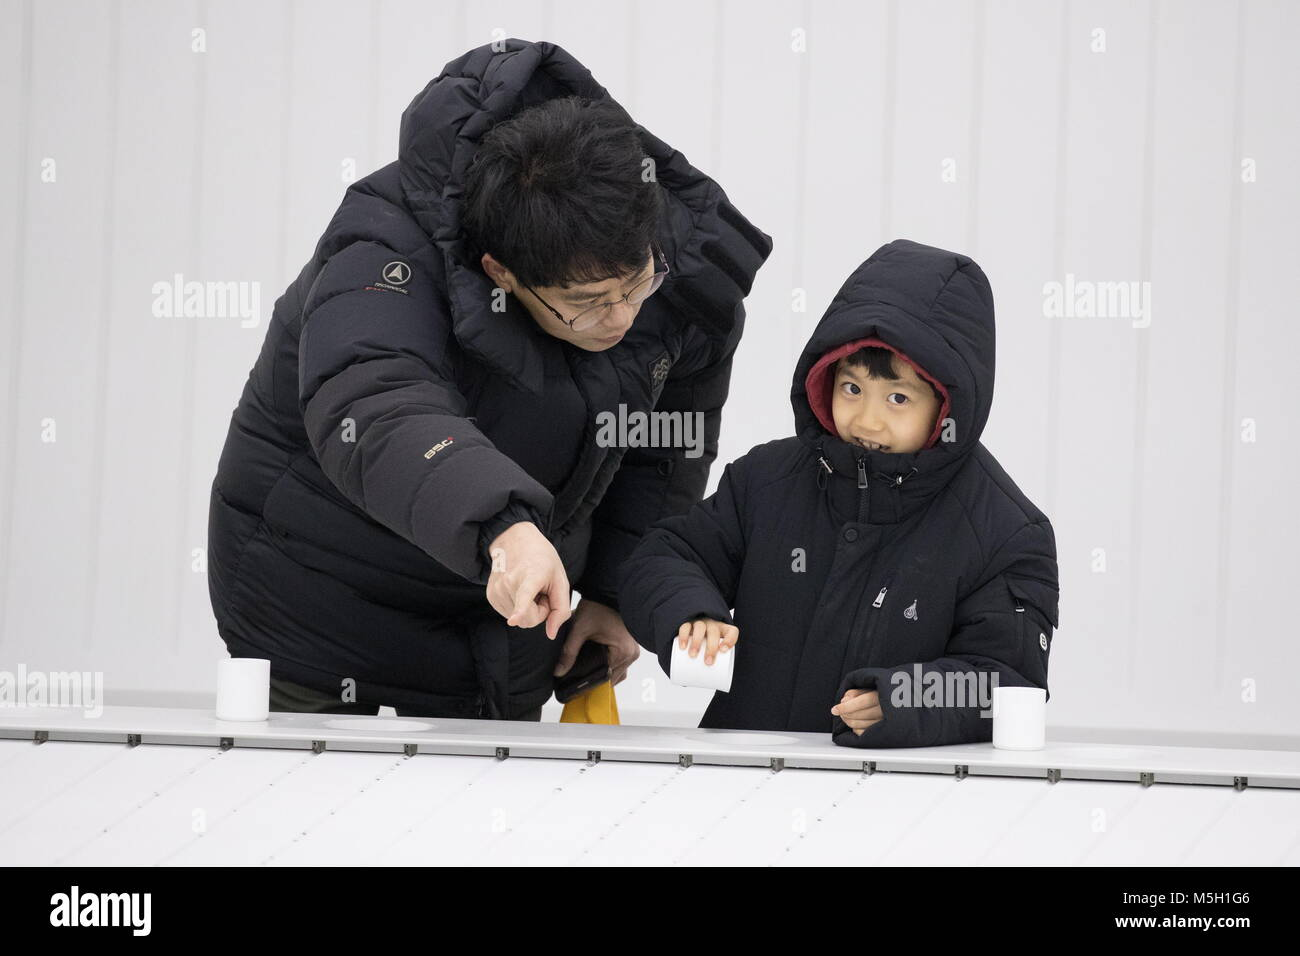 PYEONGCHANG, SOUTH KOREA - FEBRUARY 23, 2018: People look at hydrophobic surface inside a pavilion, nicknamed the - Stock Image